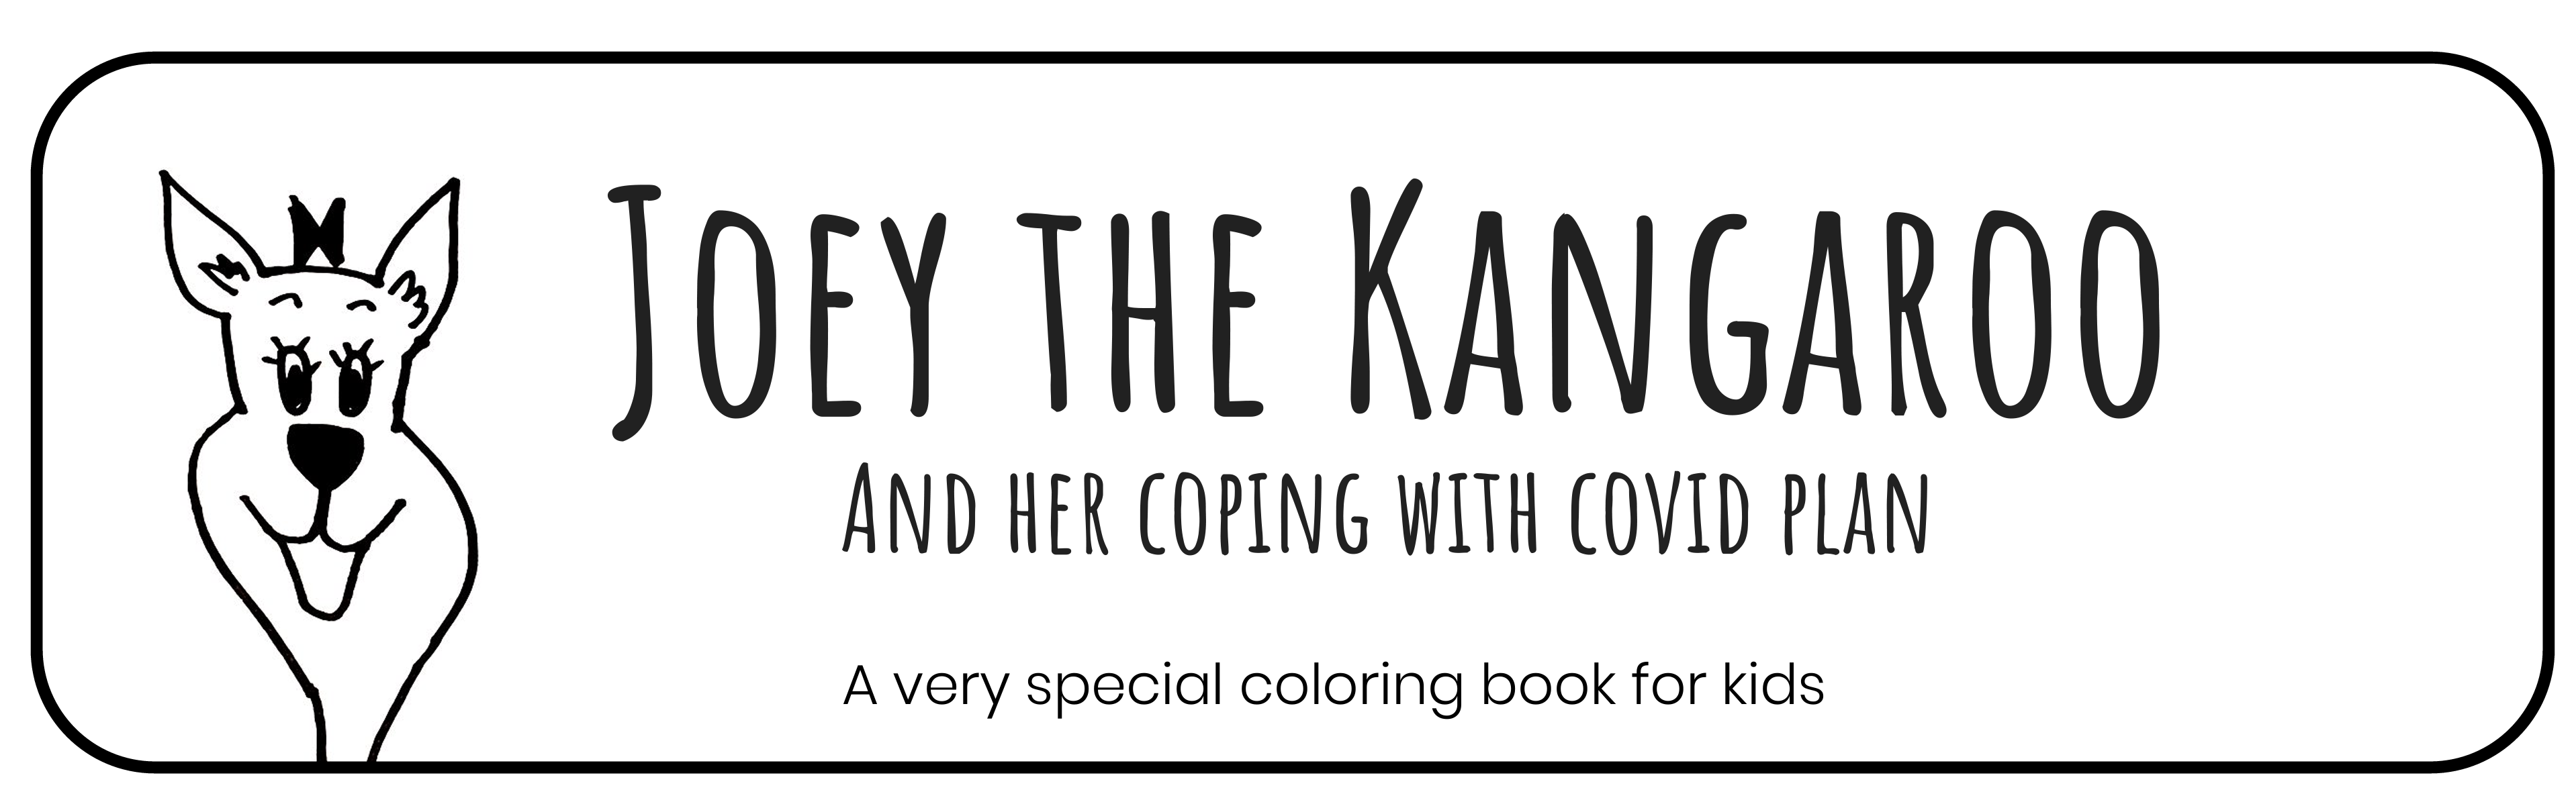 Joey the kangaroo and her coping with COVID plan : a very special coloring book for kids